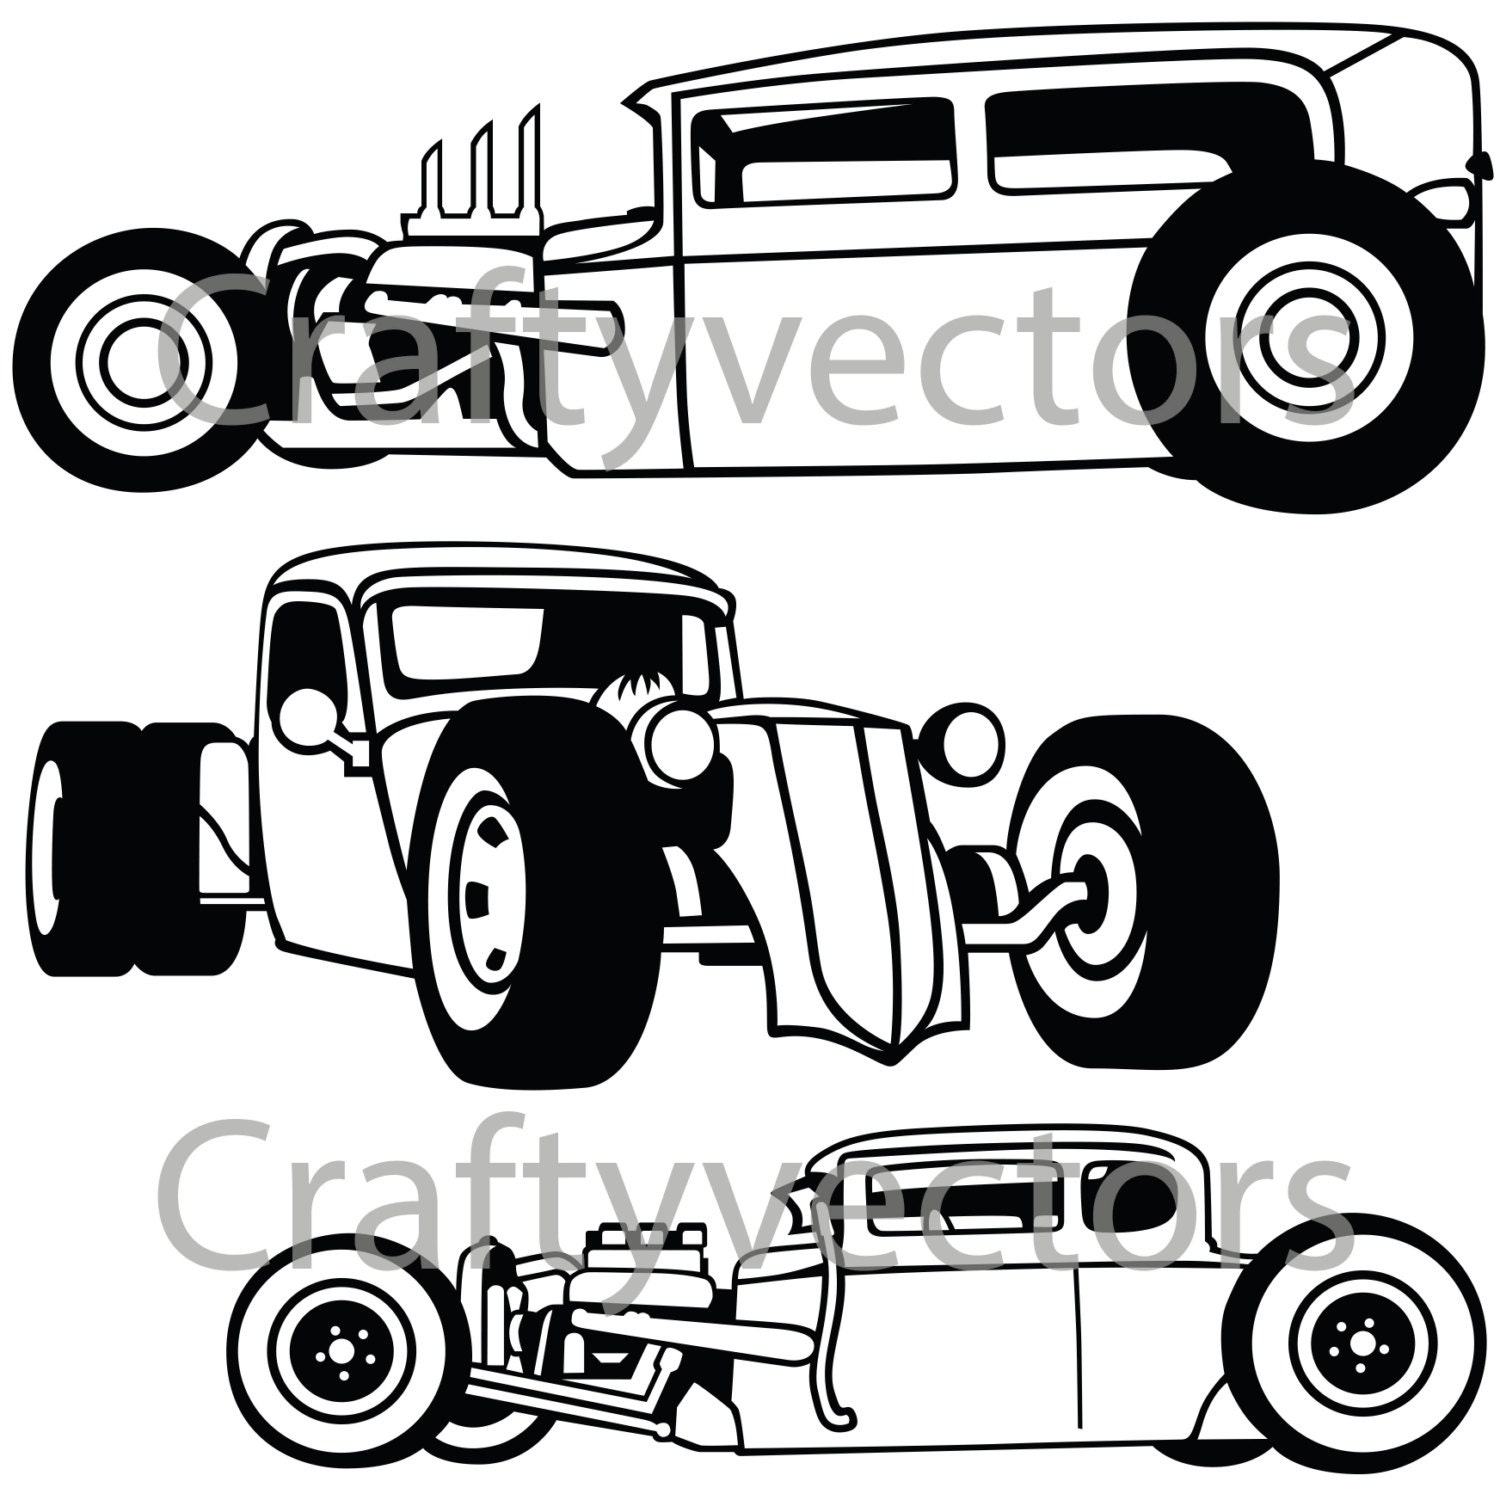 Rat Rod Cars Svg Vector Files on demolition derby cars